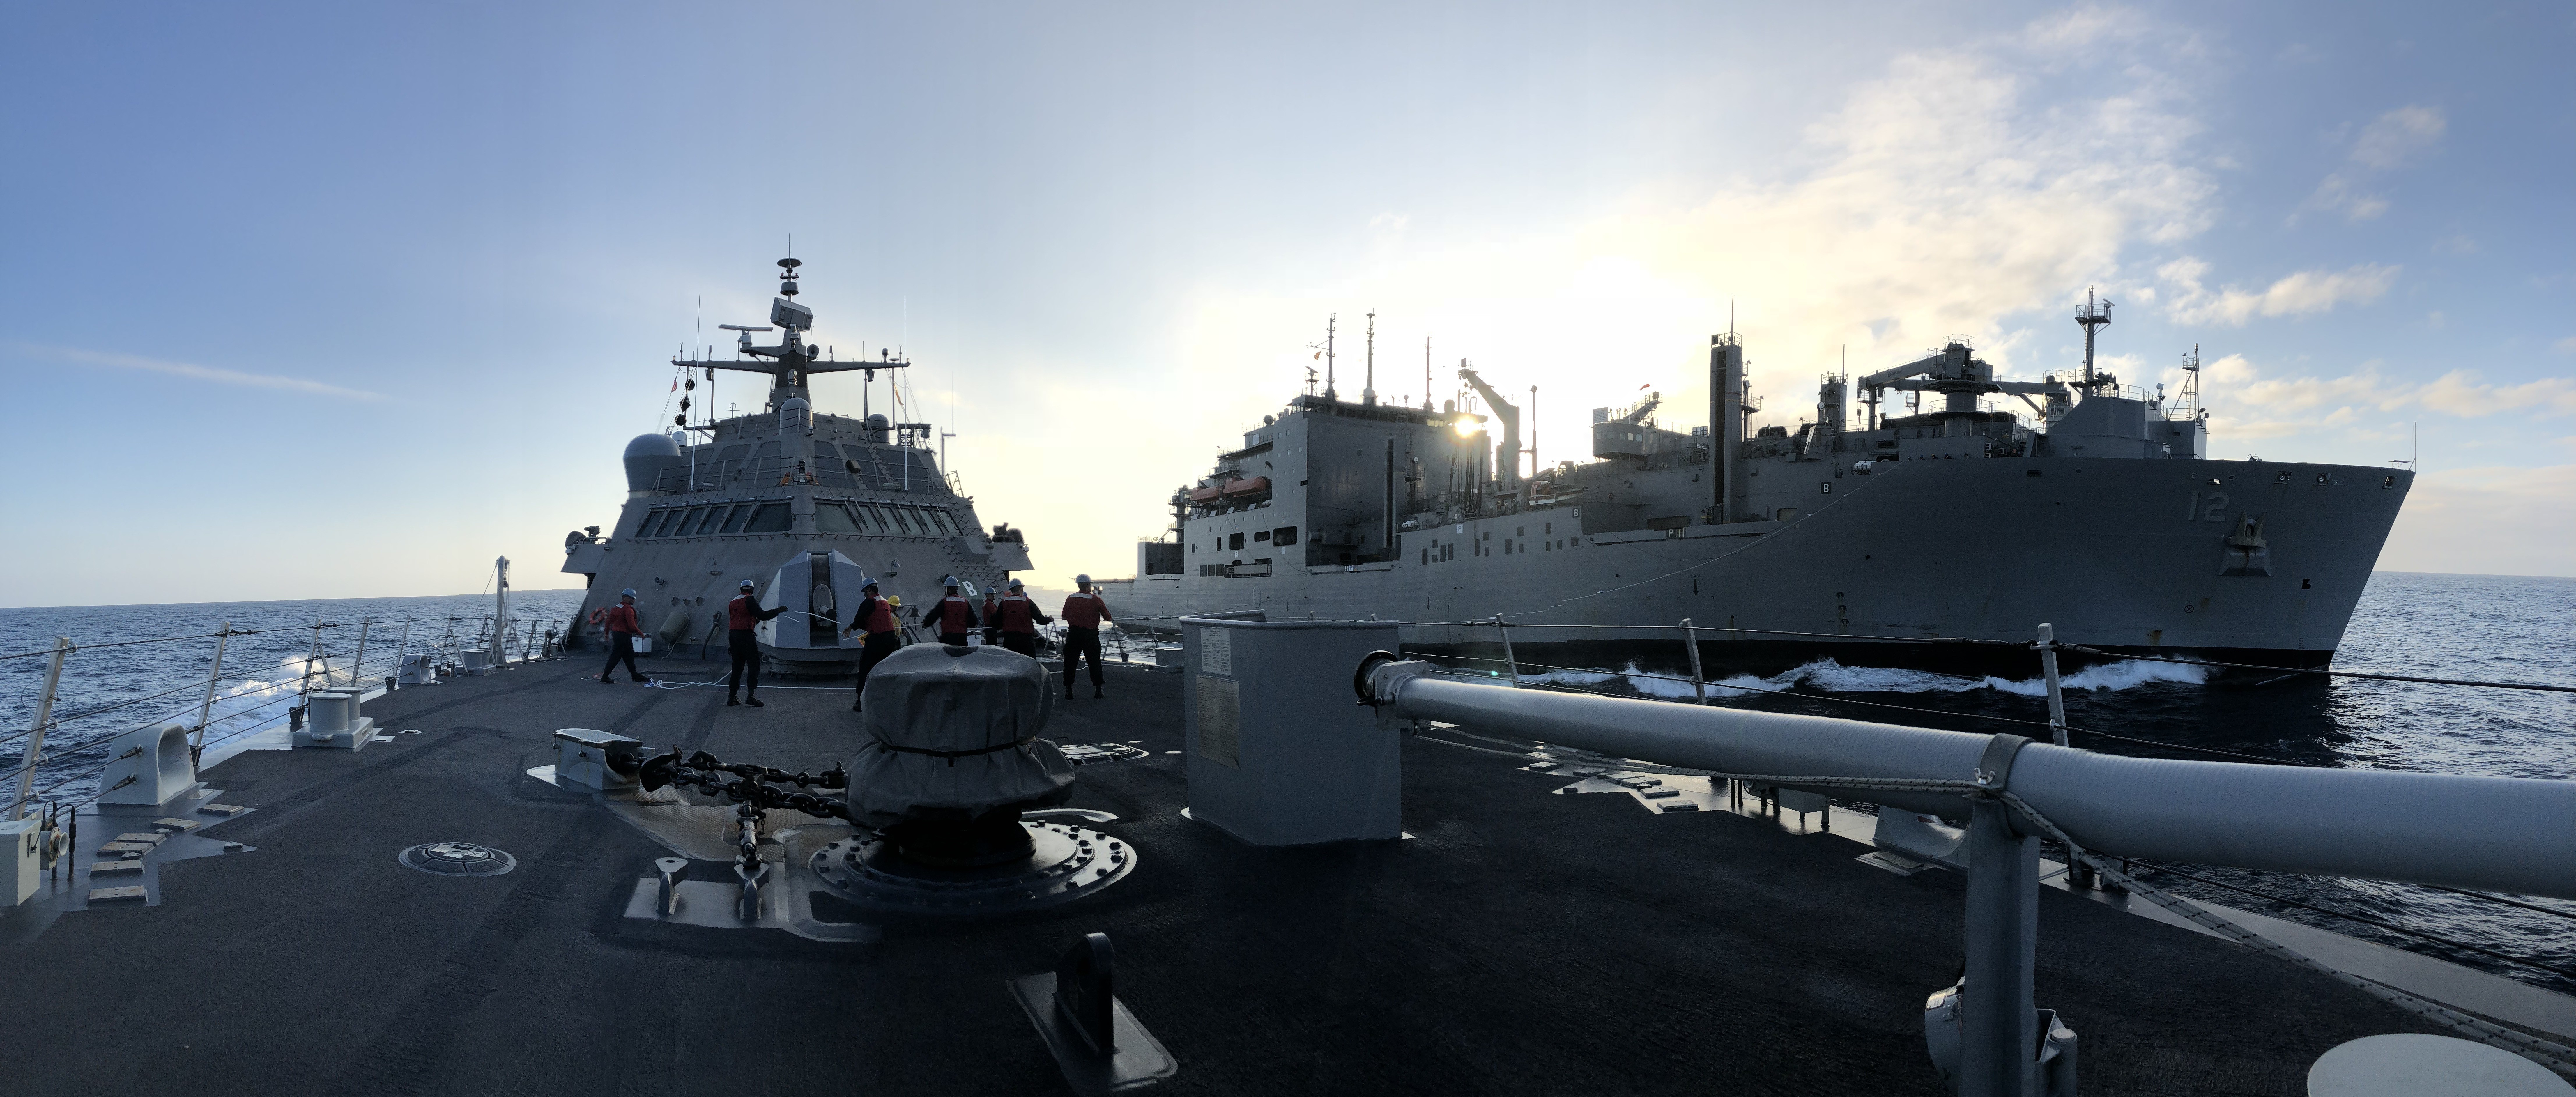 Sailors aboard the Freedom-class littoral combat ship USS Detroit (LCS 7) conduct a replenishment-at-sea with the Lewis and Clark-class dry cargo and ammunition ship USNS William McLean (T-AKE 12).